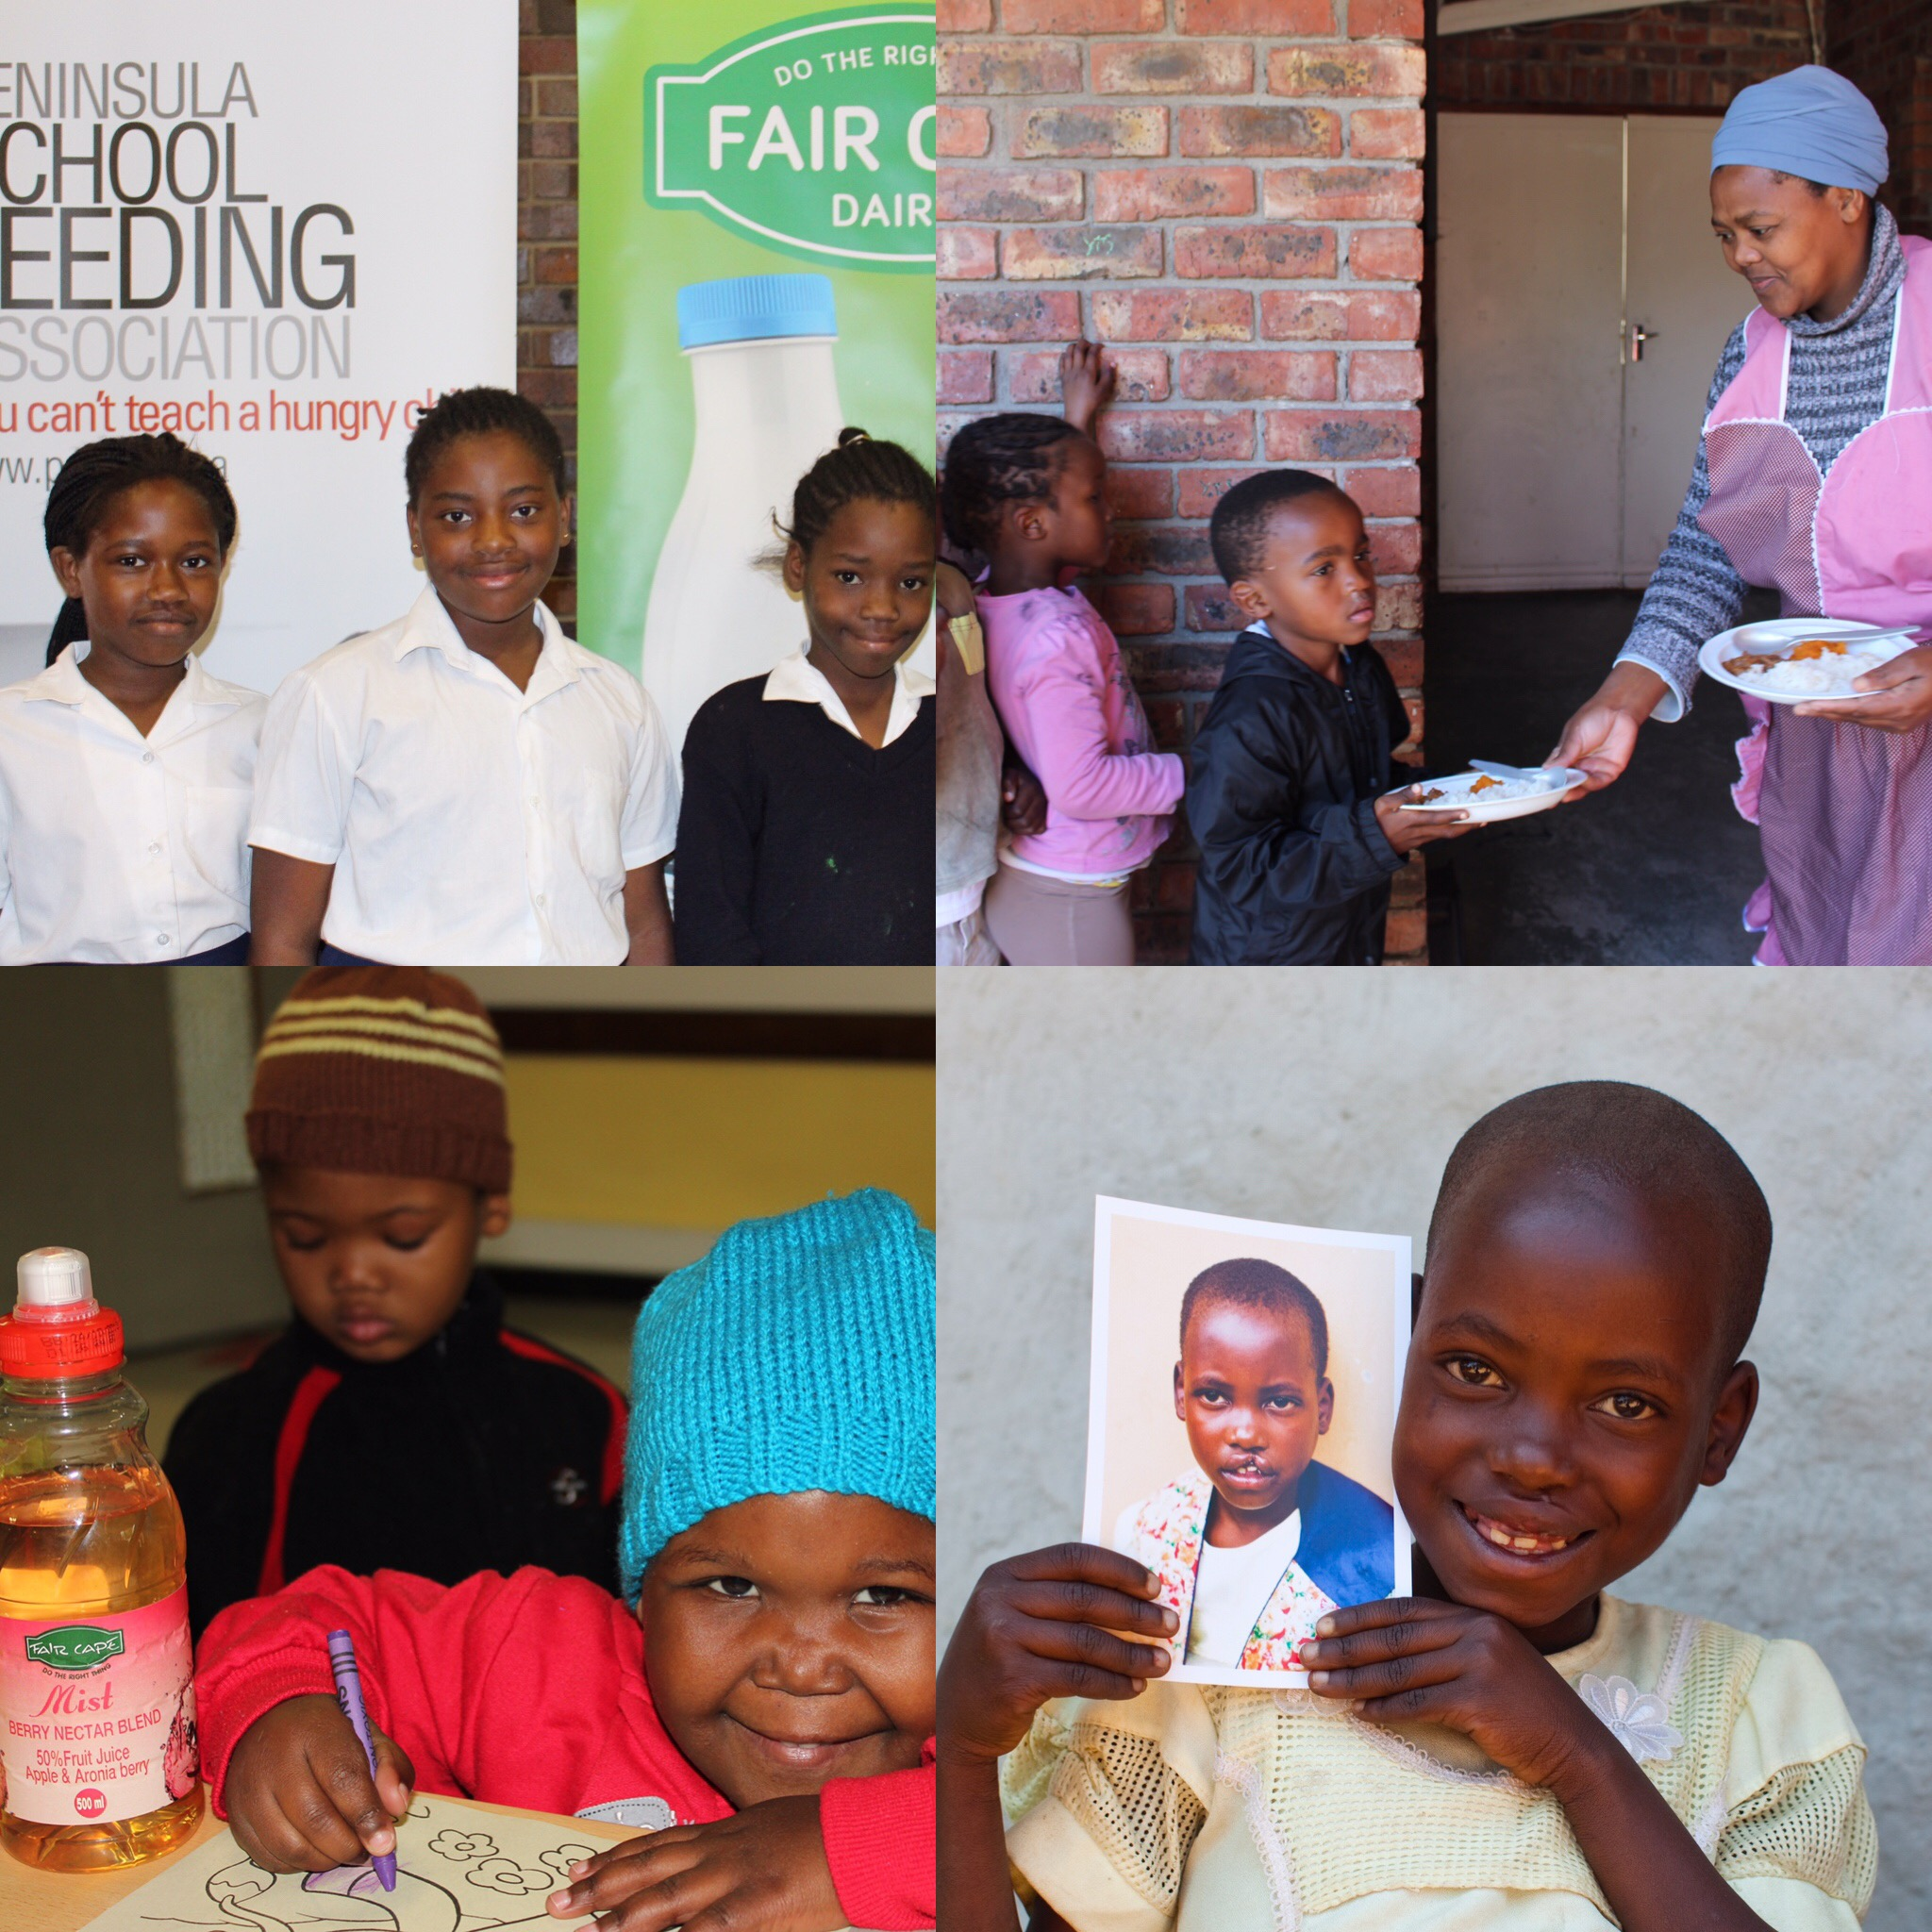 The charities we support for International Charity Week